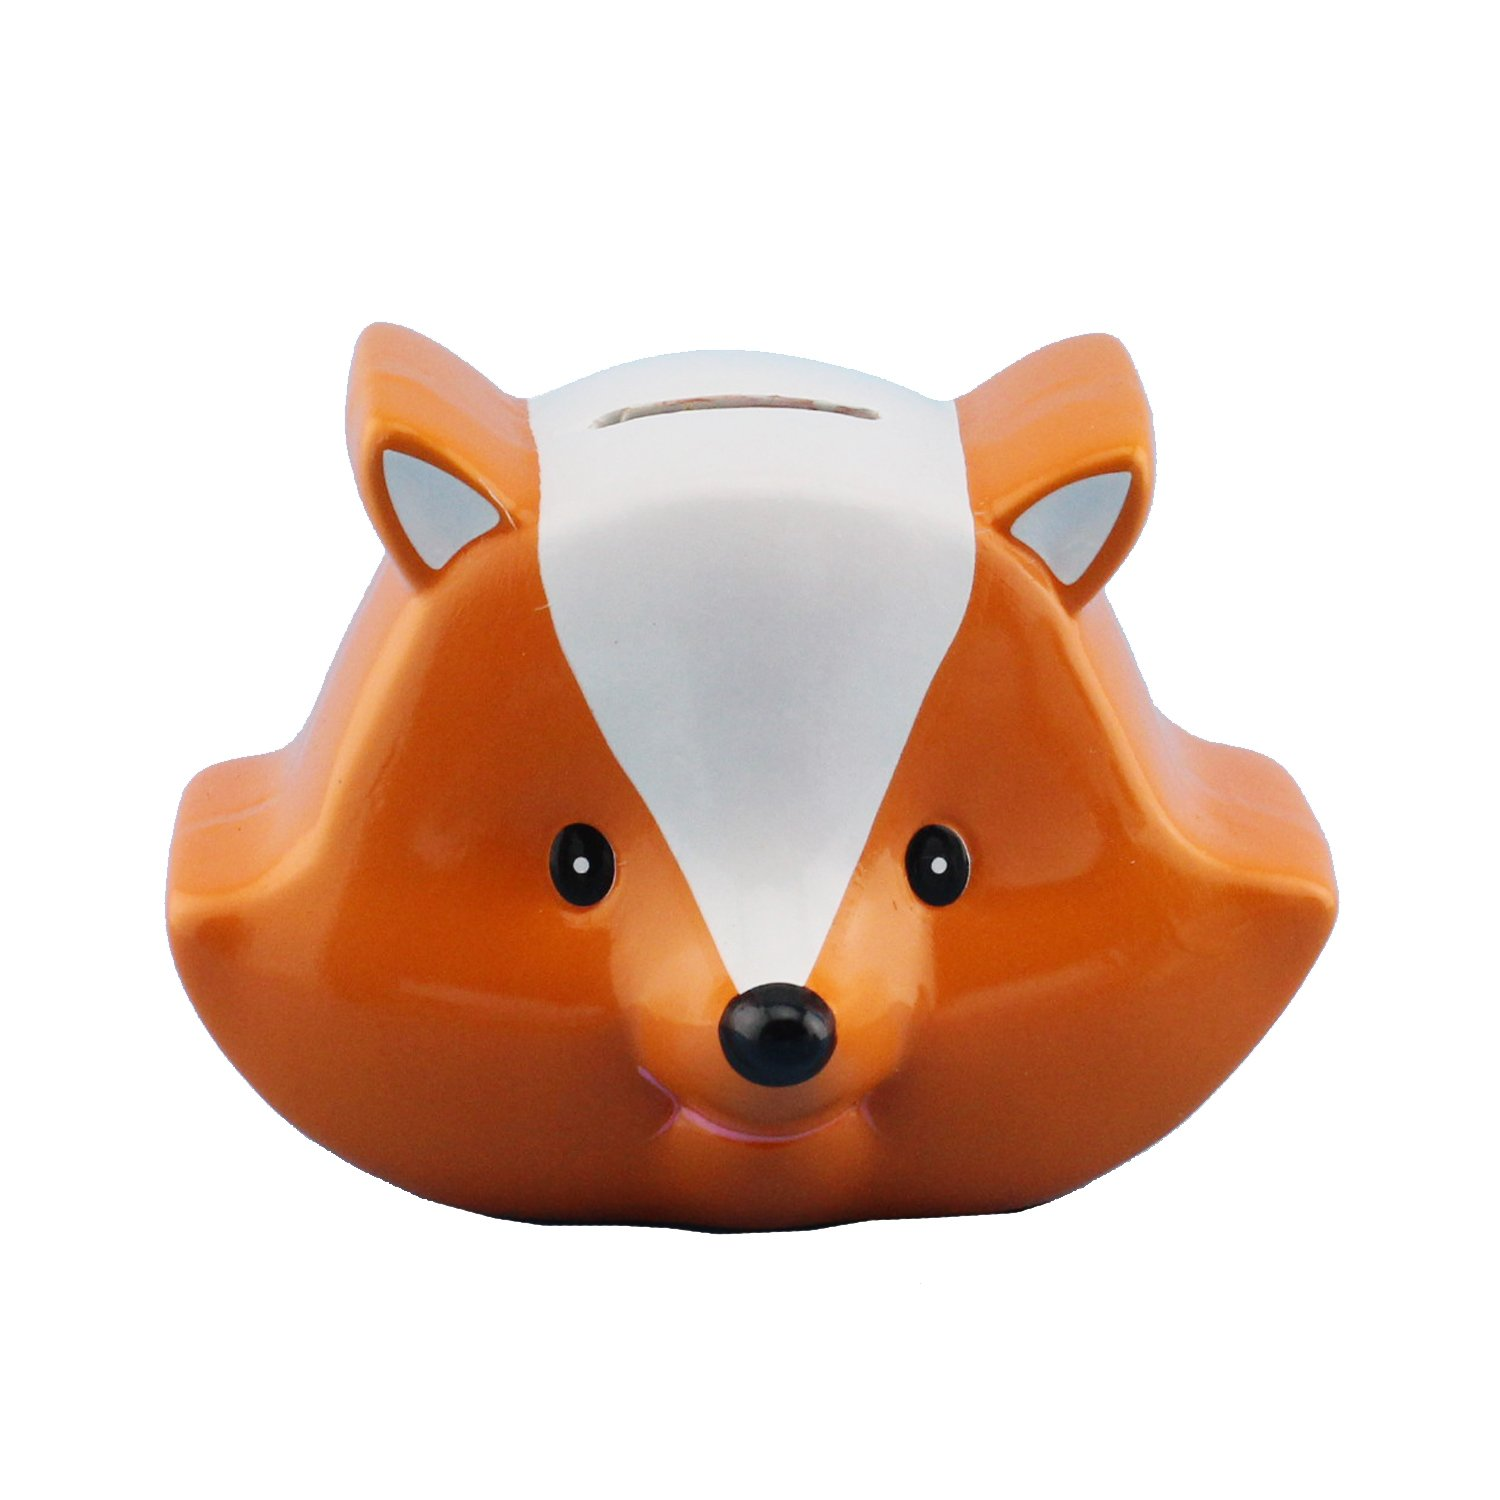 Ceramic Fox Children Gift Coin Bank in Orange and White